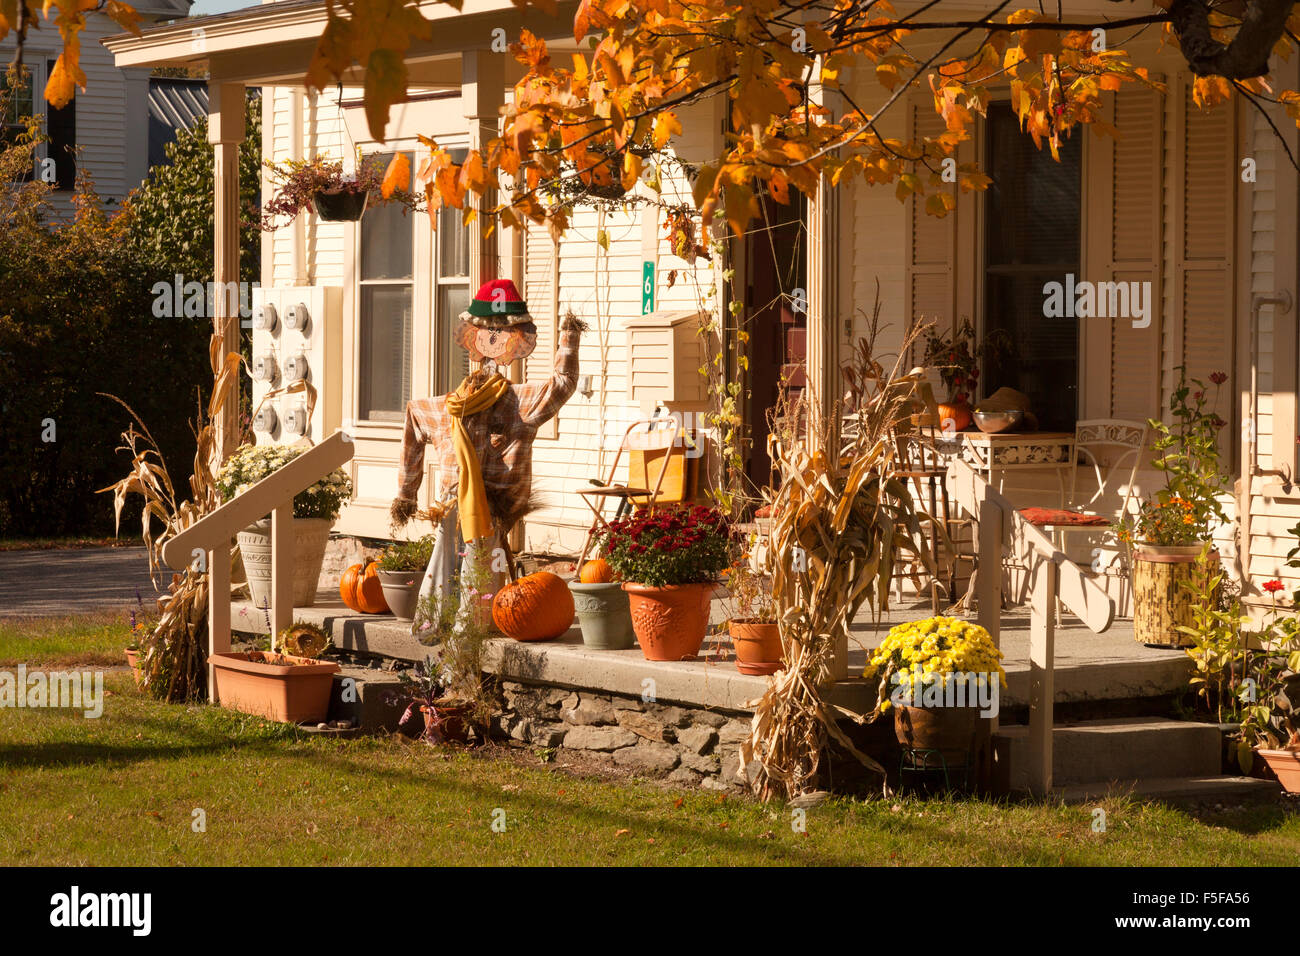 Halloween decorations on a house porch, Stowe, Vermont VT, New England USA - Stock Image